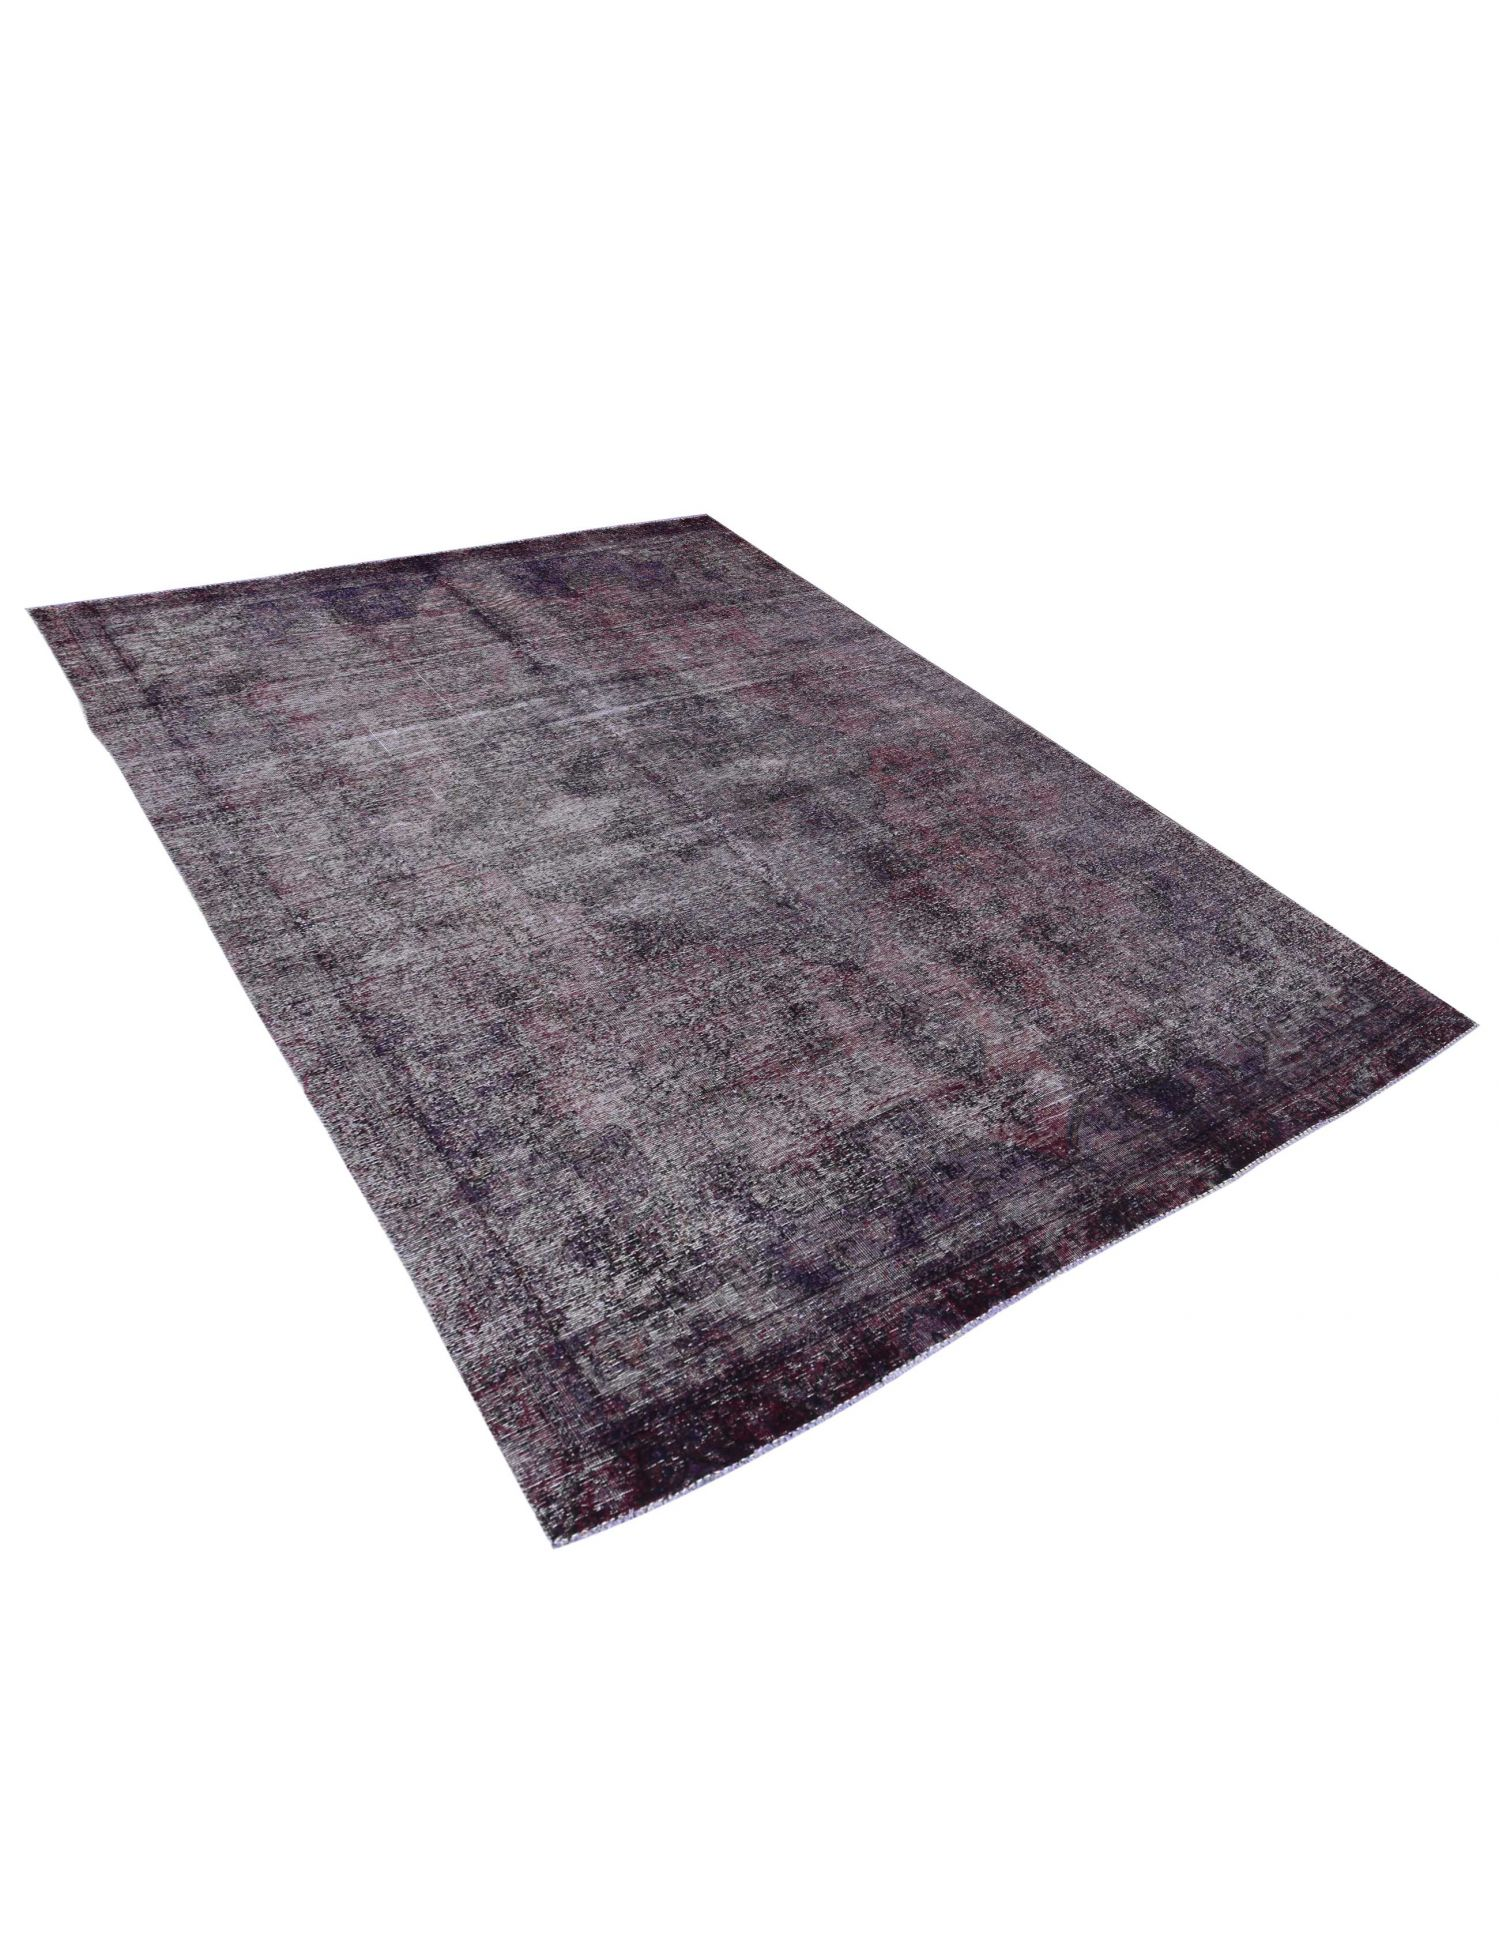 Vintage Carpets  purple <br/>312 x 238 cm